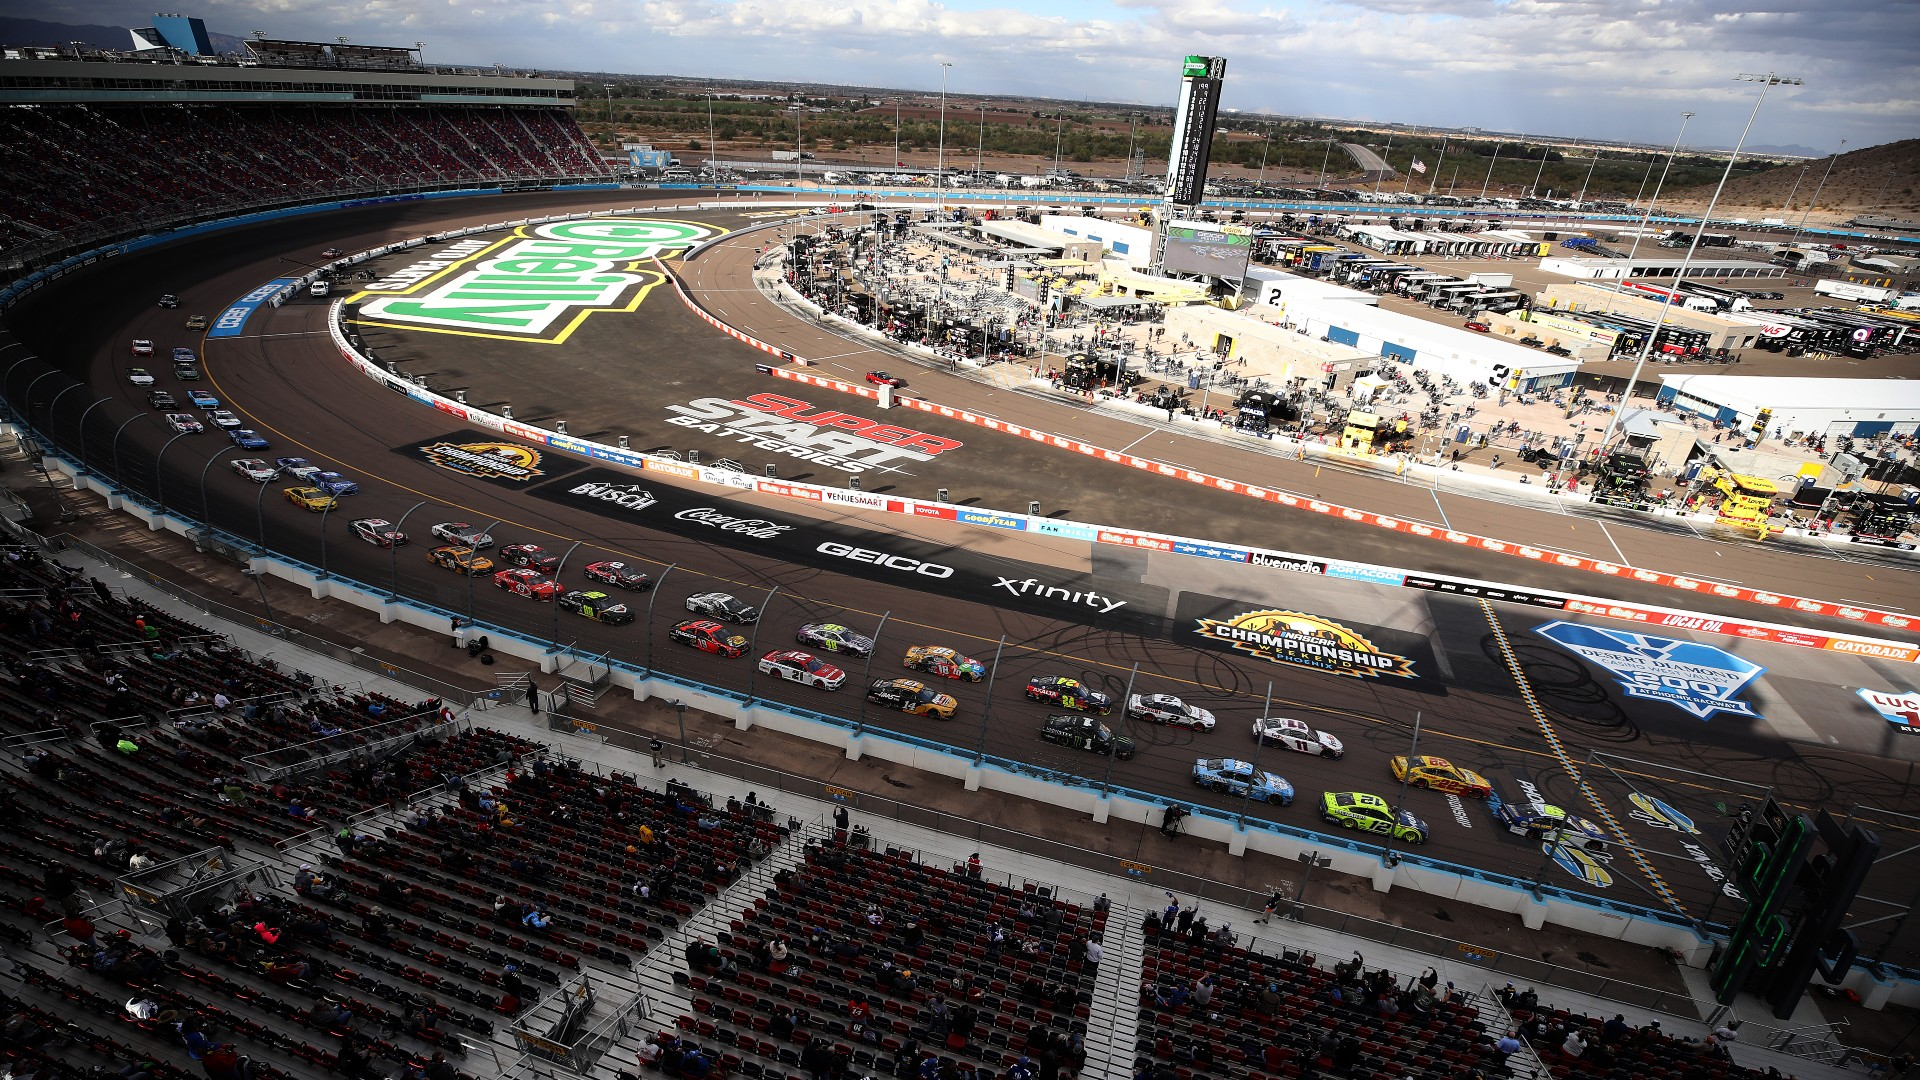 Who won the NASCAR race yesterday? Complete results from Sunday's Phoenix race